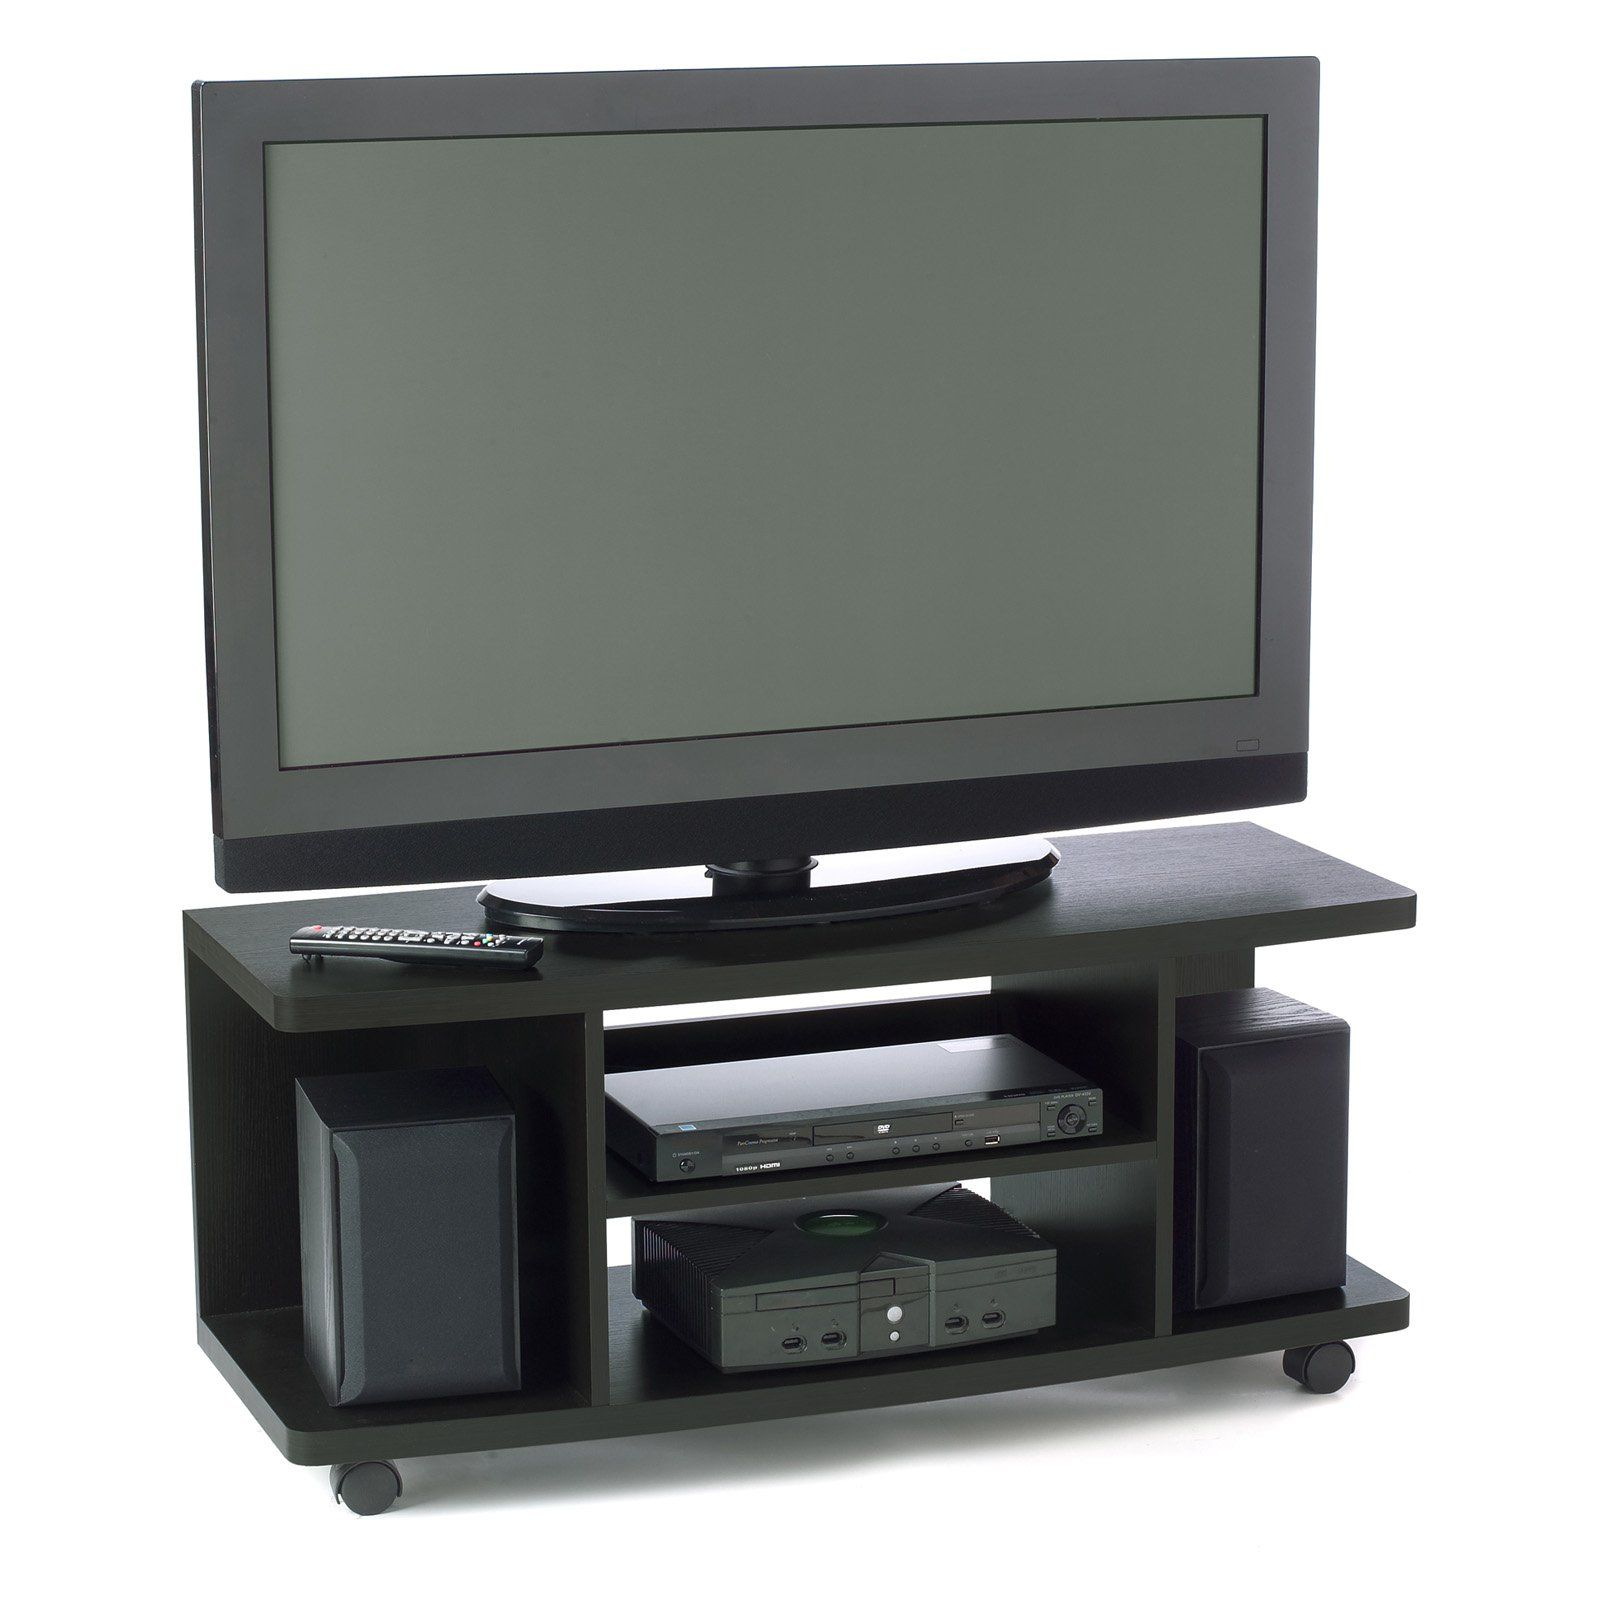 Convenience Concepts Northfield Grand Tv Stand From Hayneedle Com Grand Tv Convenience Concepts Tv Stand